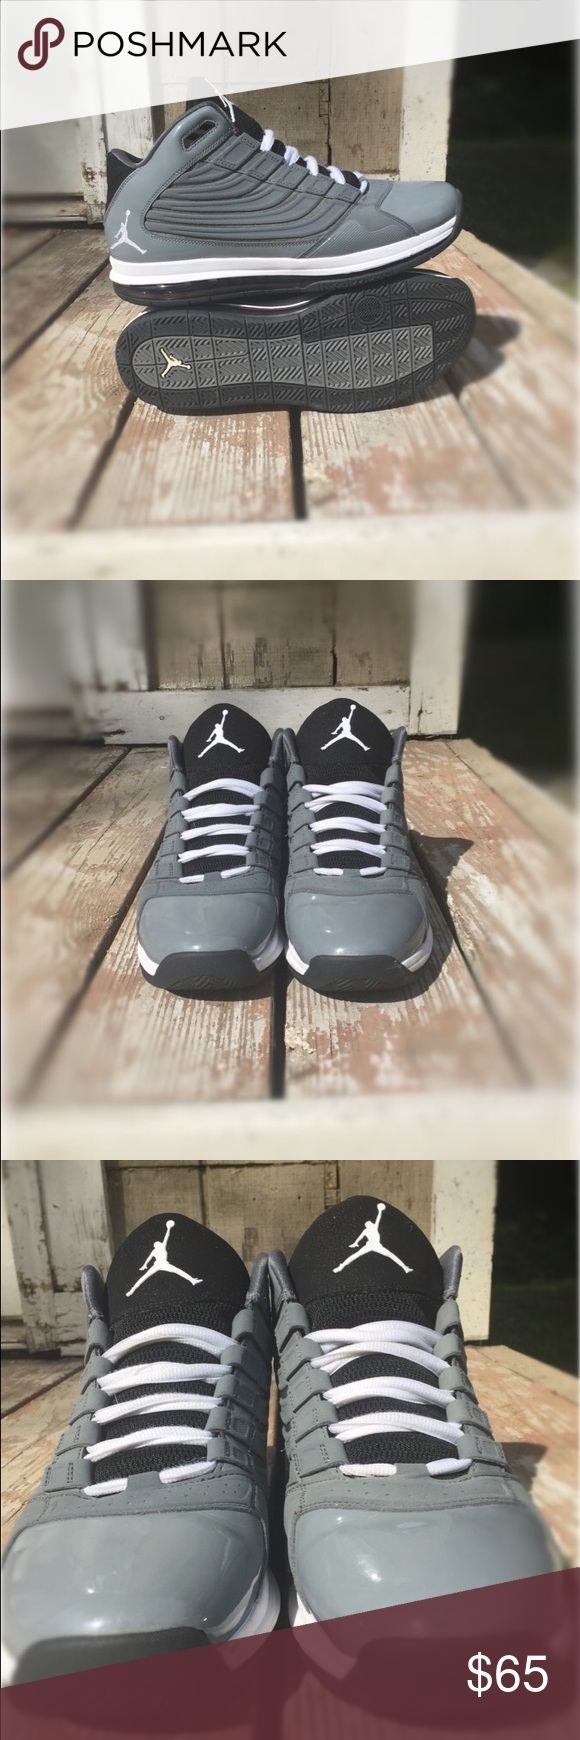 Air Jordans, Gray and Black, Size 11.5 Worn less than 5 times. No box. Give me your best offer! Jordan Shoes